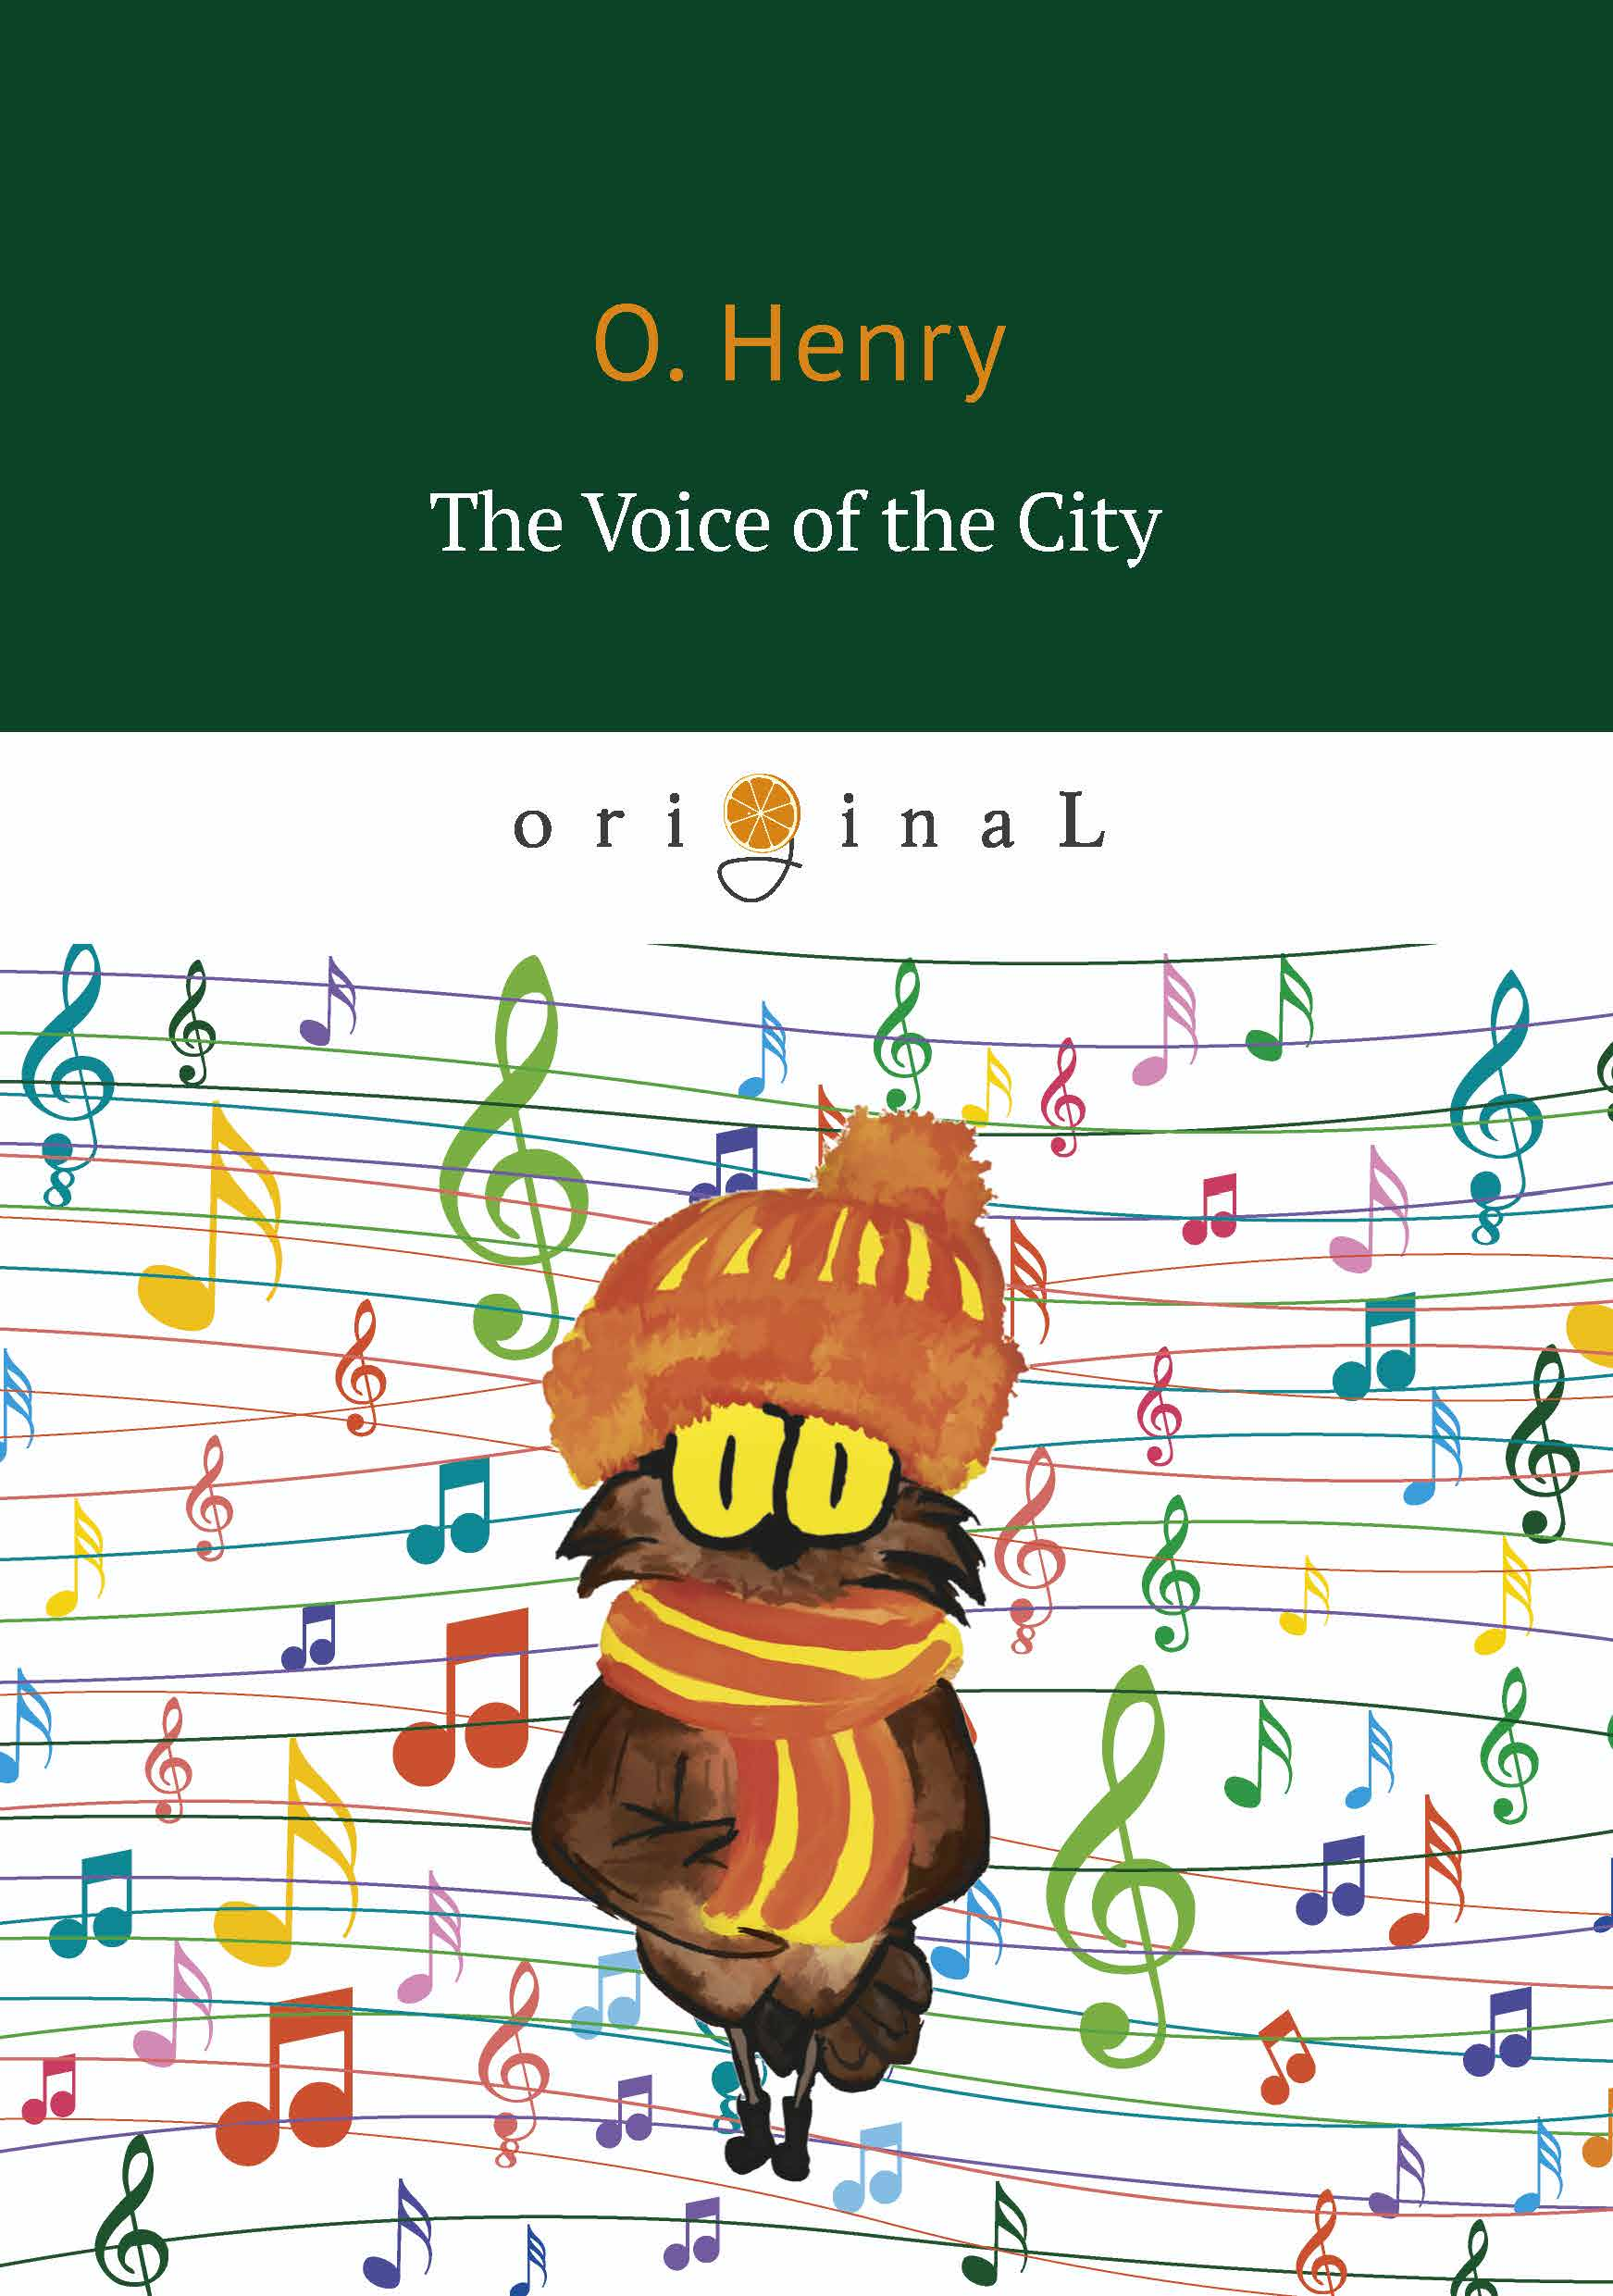 O. Henry The Voice of the City henry o collected tales i the voice of the city a lickpenny lover dougherry s eye opener